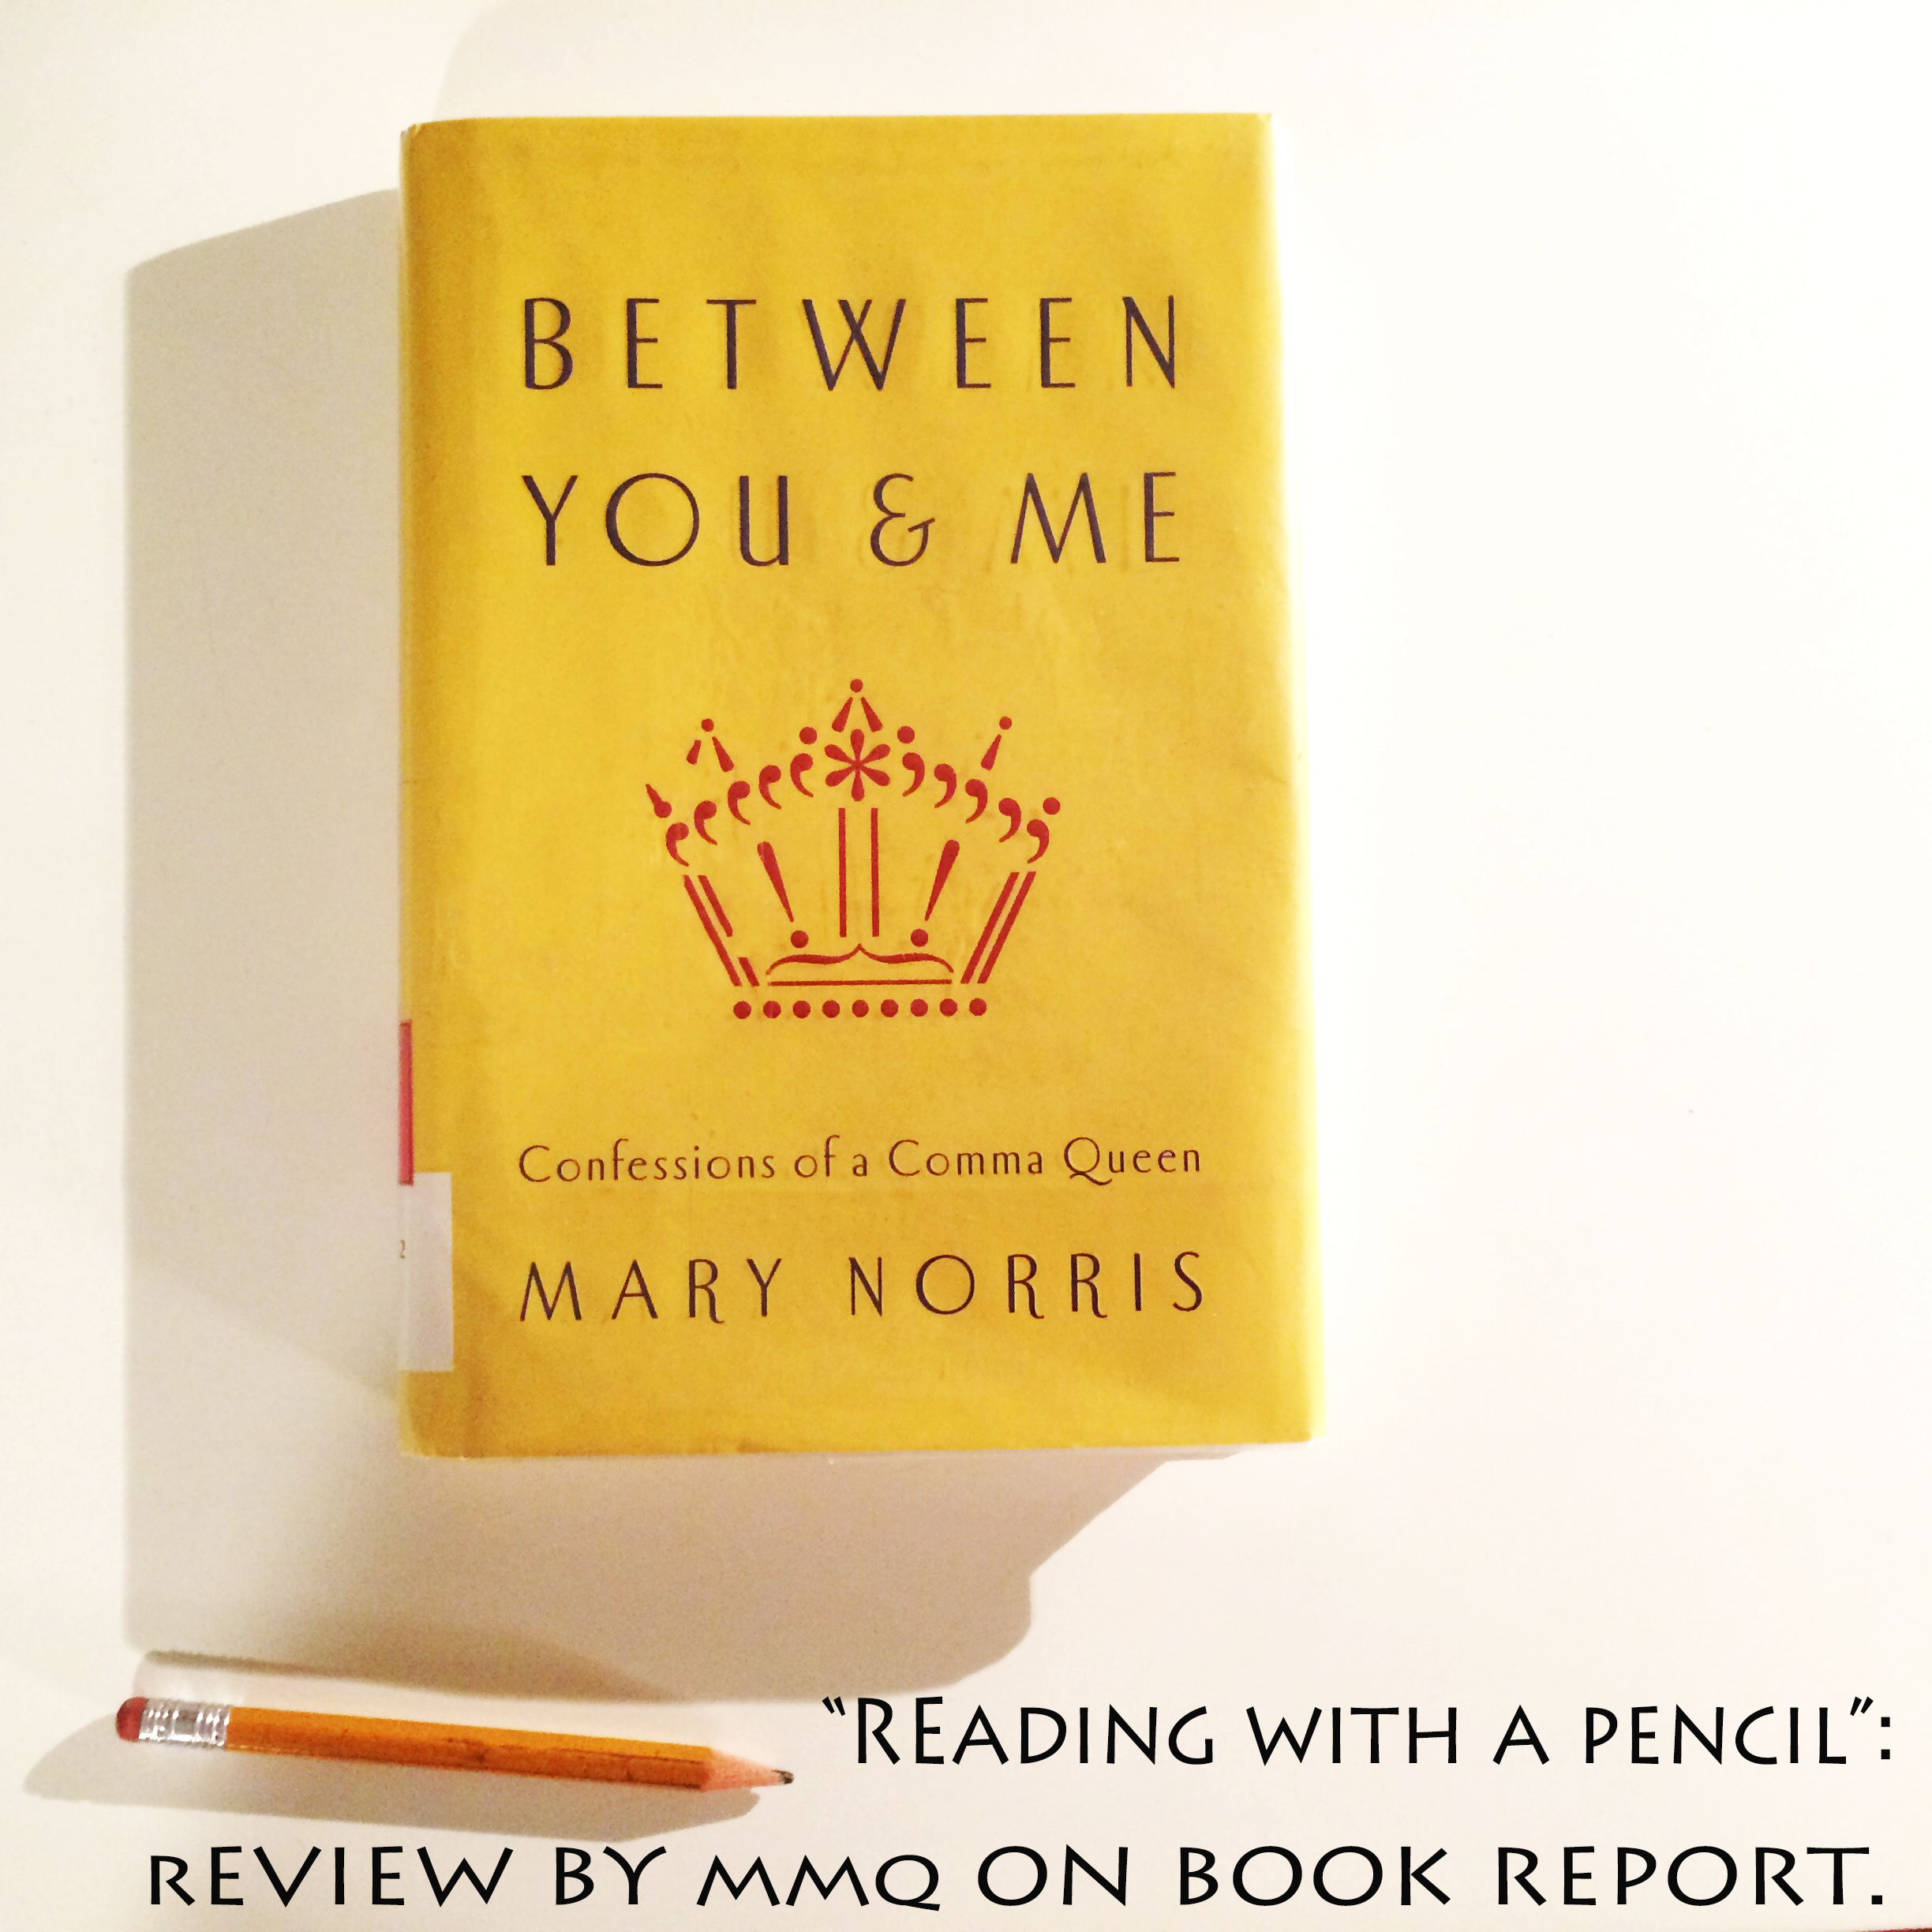 Review of Reading with a Pencil by Mary Norris